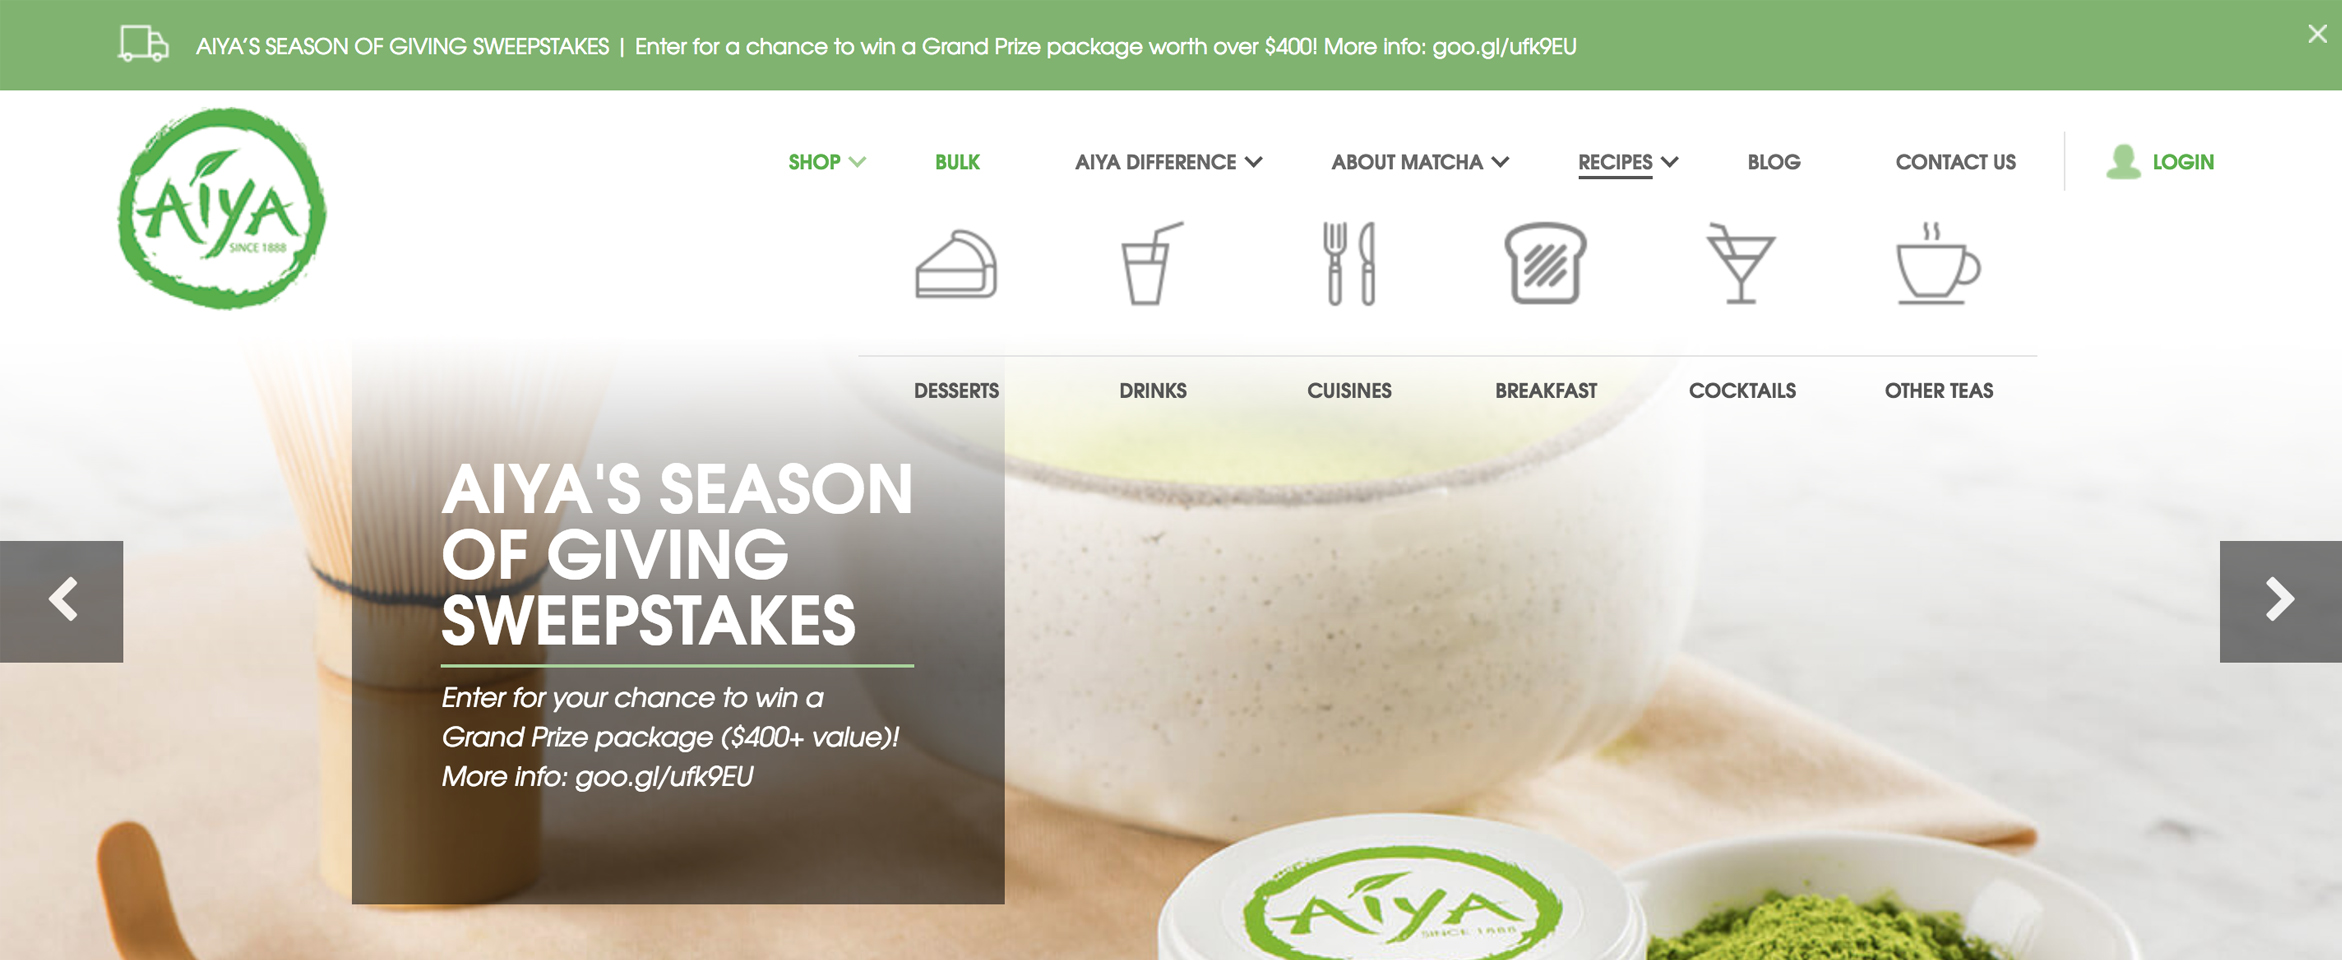 Premium Matcha Tea Company Brews a New Look Online Build Image-1